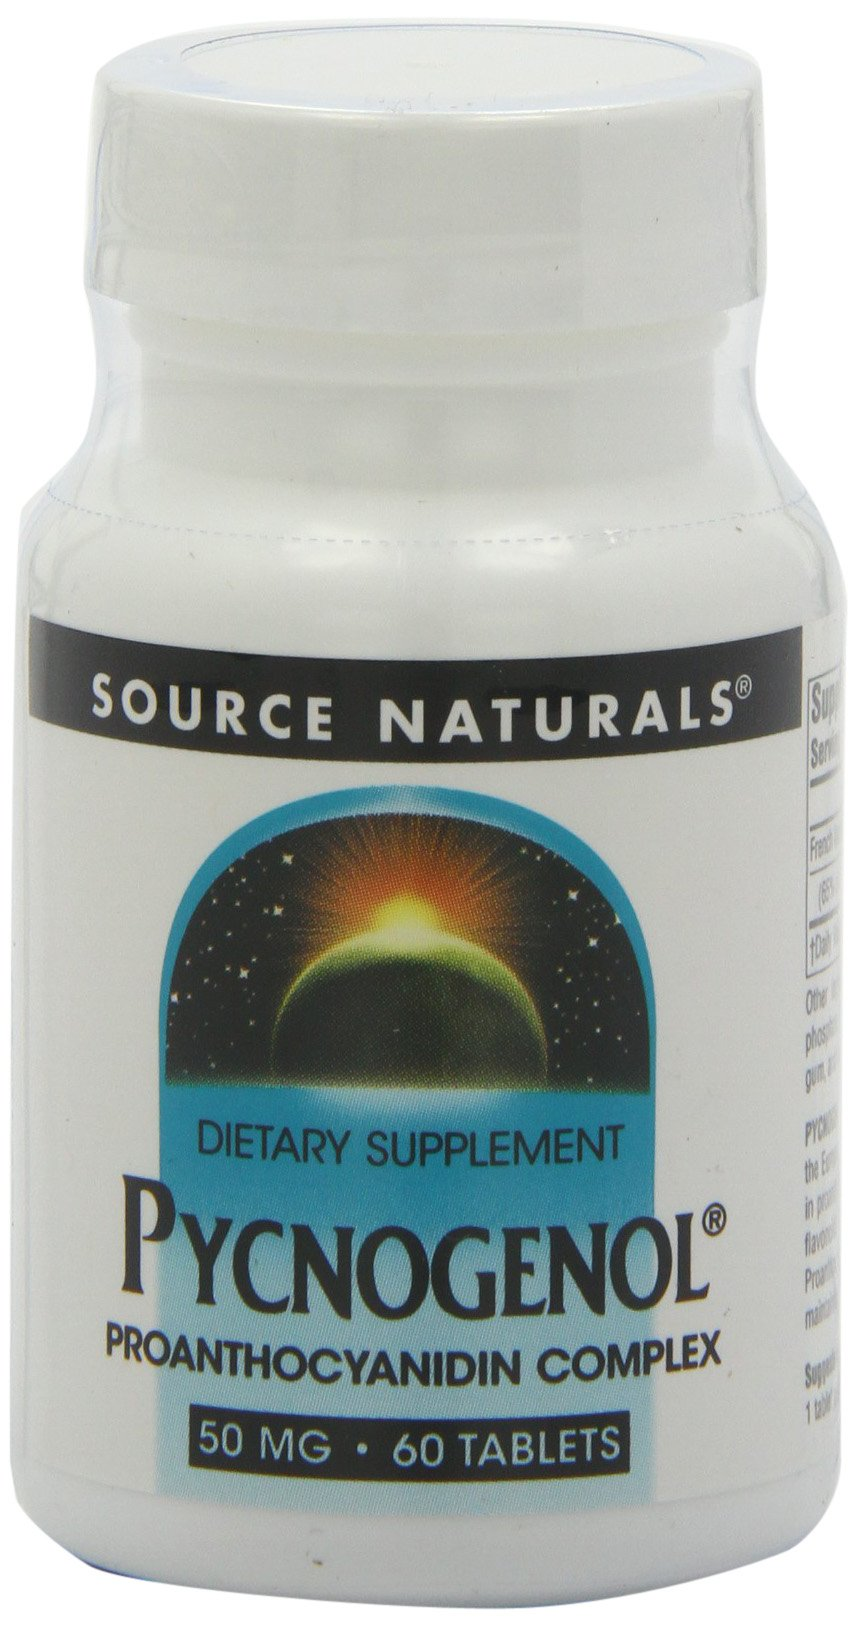 Source Naturals Pycnogenol 50mg Proanthocyanidin Complex Herbal Antioxidant French Maritime Pine Bark Extract - 60 Tablets